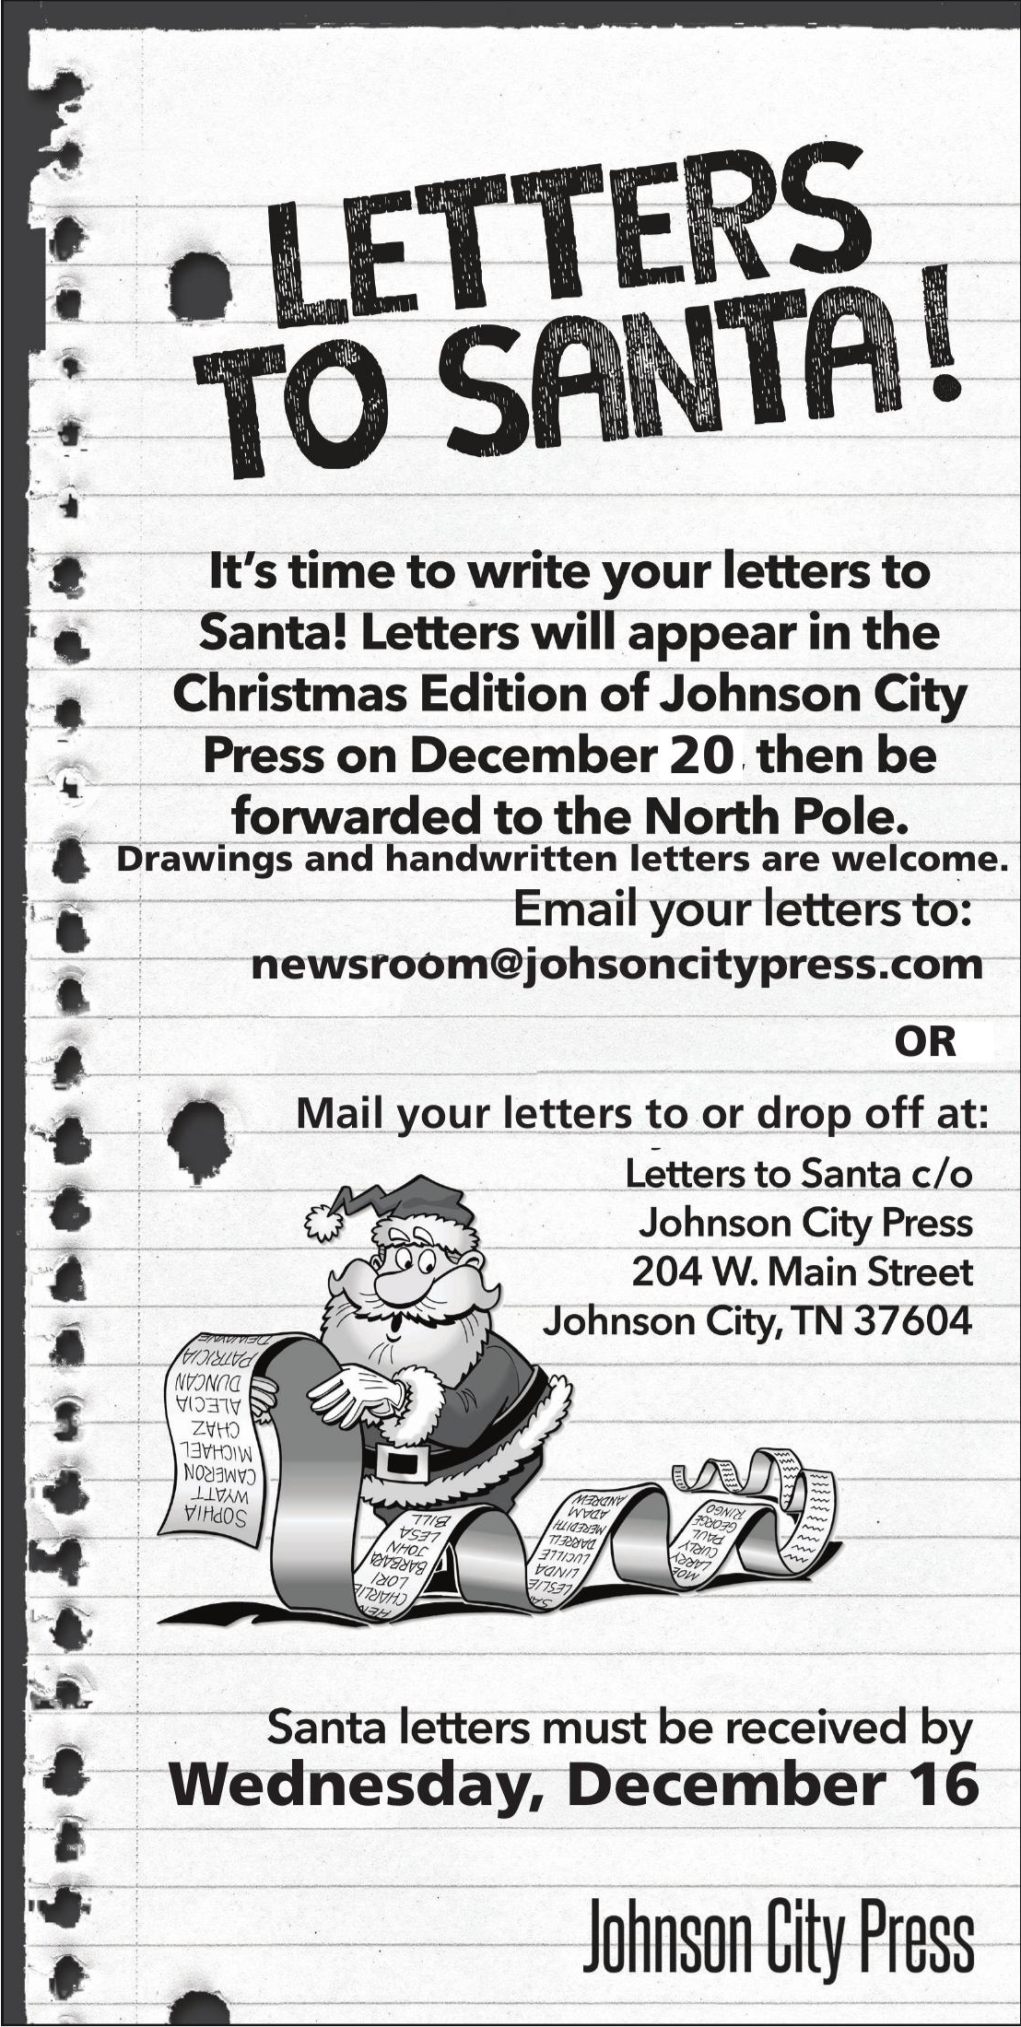 Send us your letters to Santa!